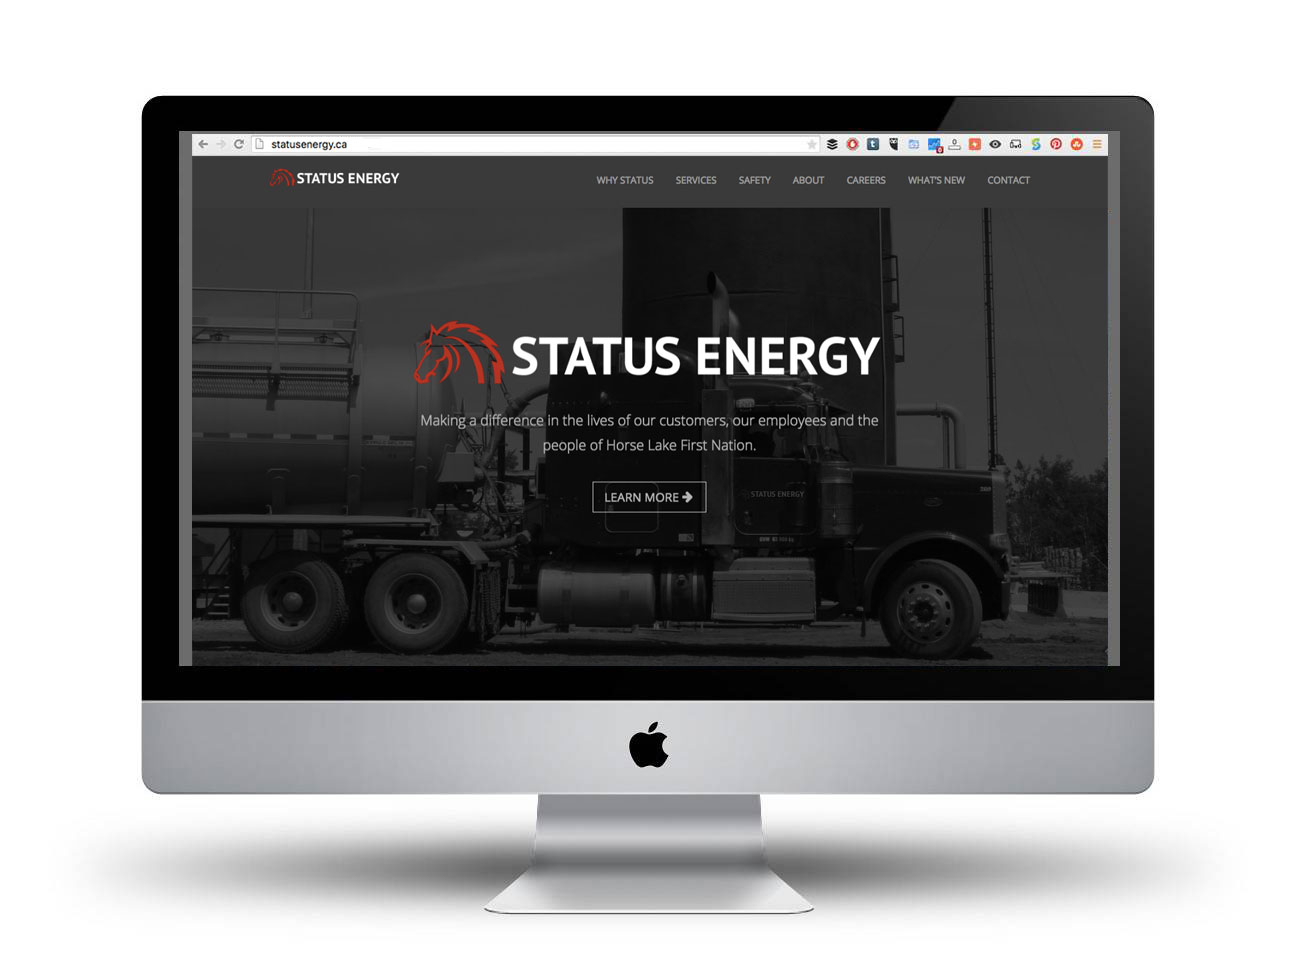 Status Energy website